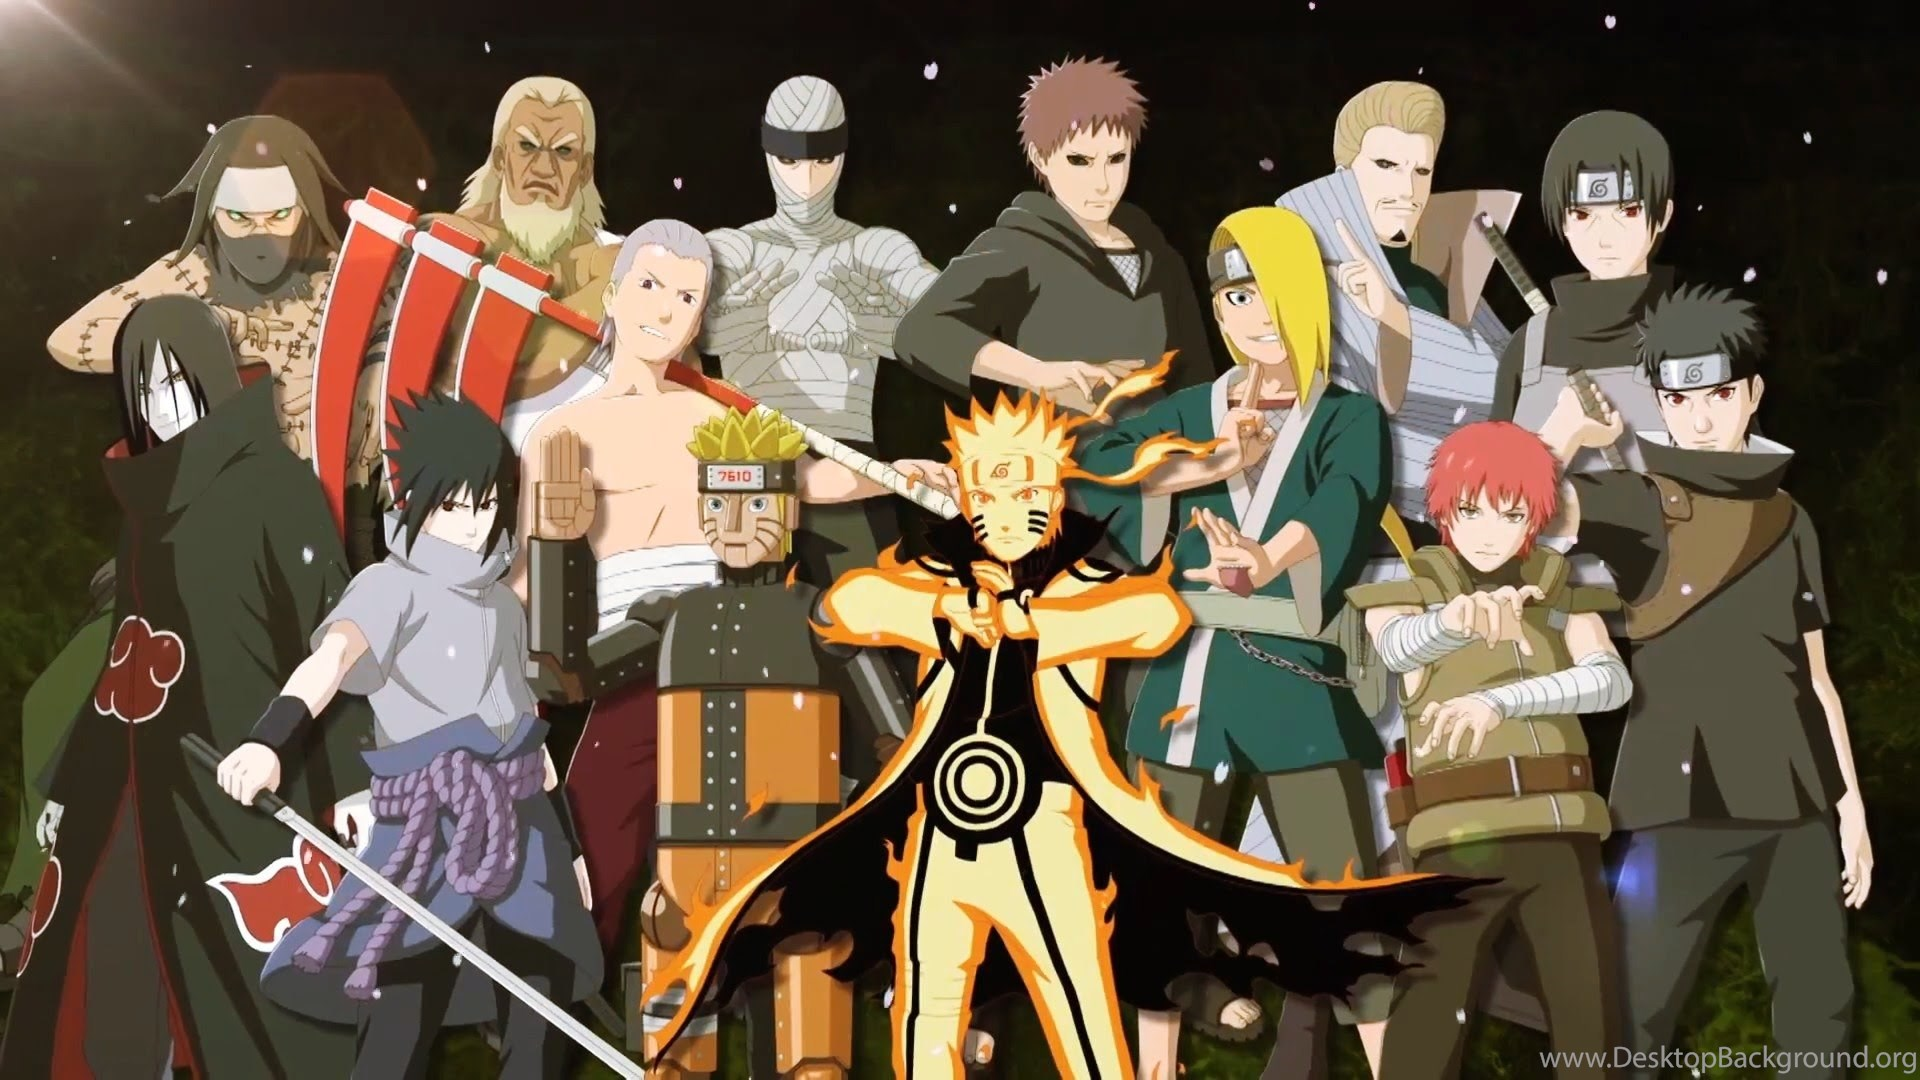 Naruto Characters In Real World Background Wallpaper: Naruto Shippuden All Characters Wallpapers Wallpapers Zone